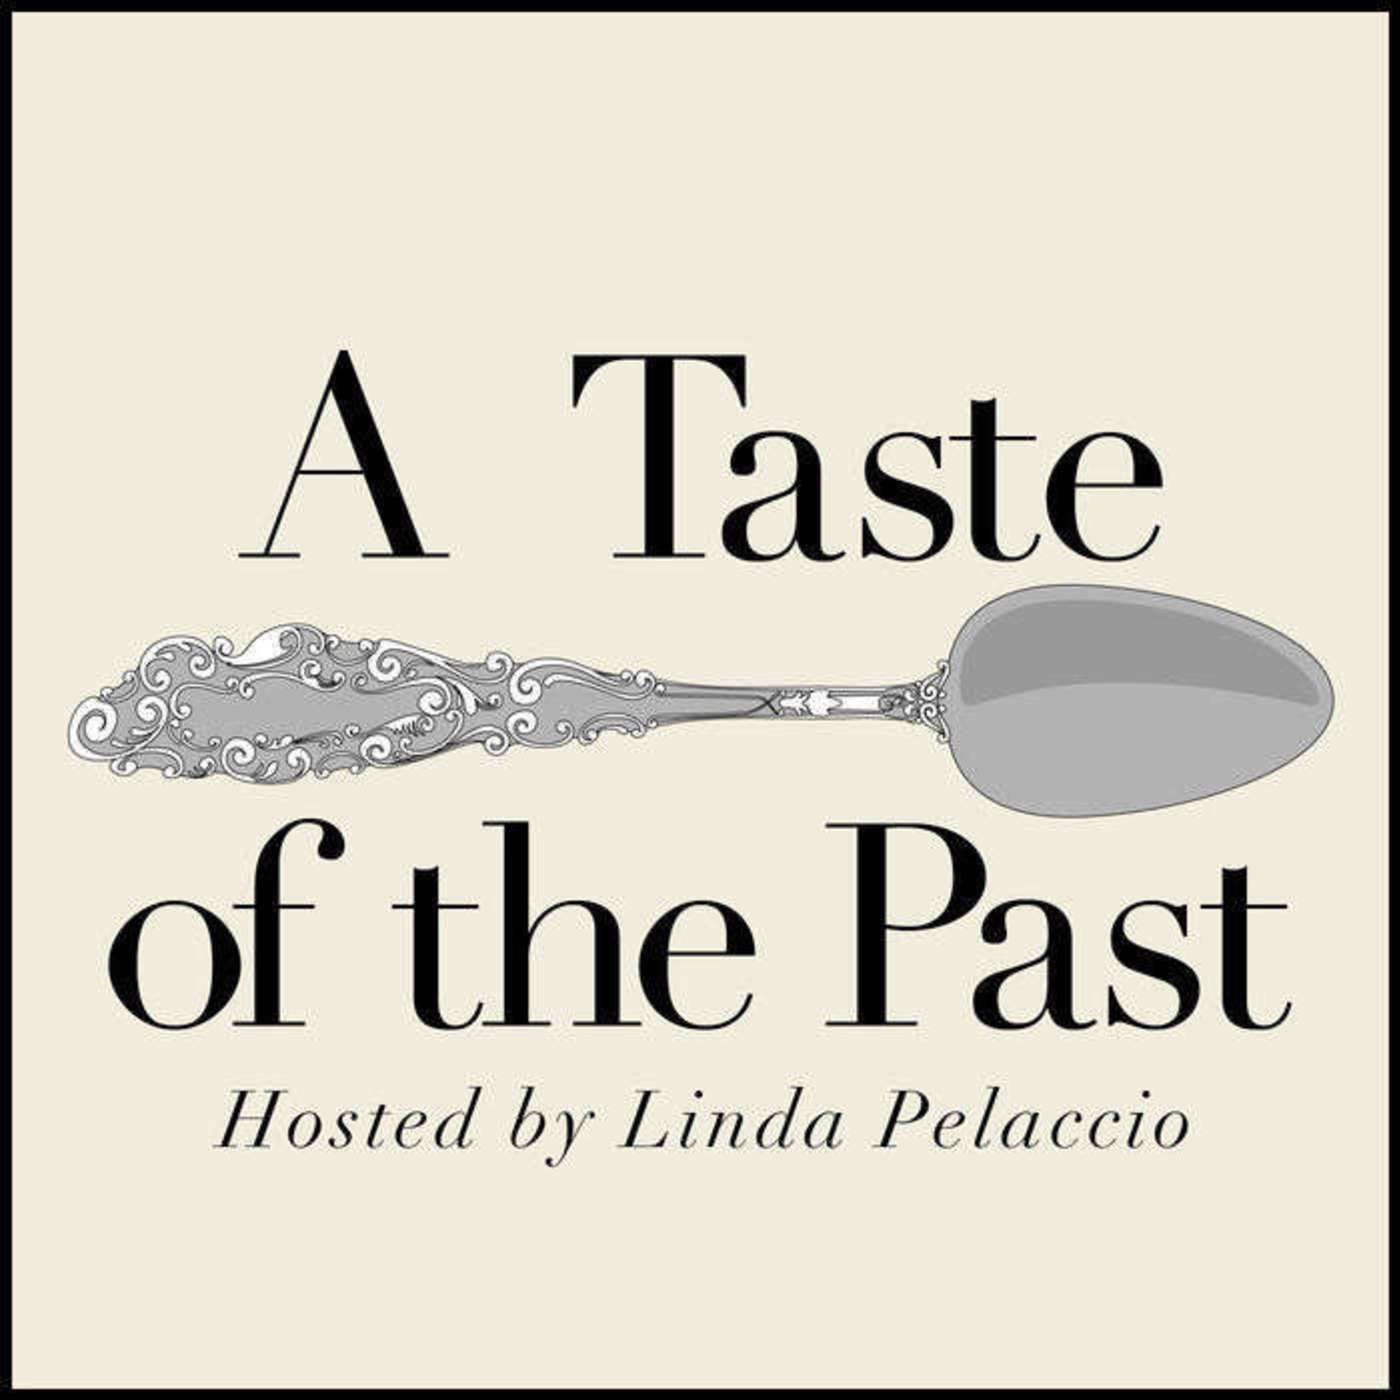 Episode 122: Drinking History with Andrew F. Smith